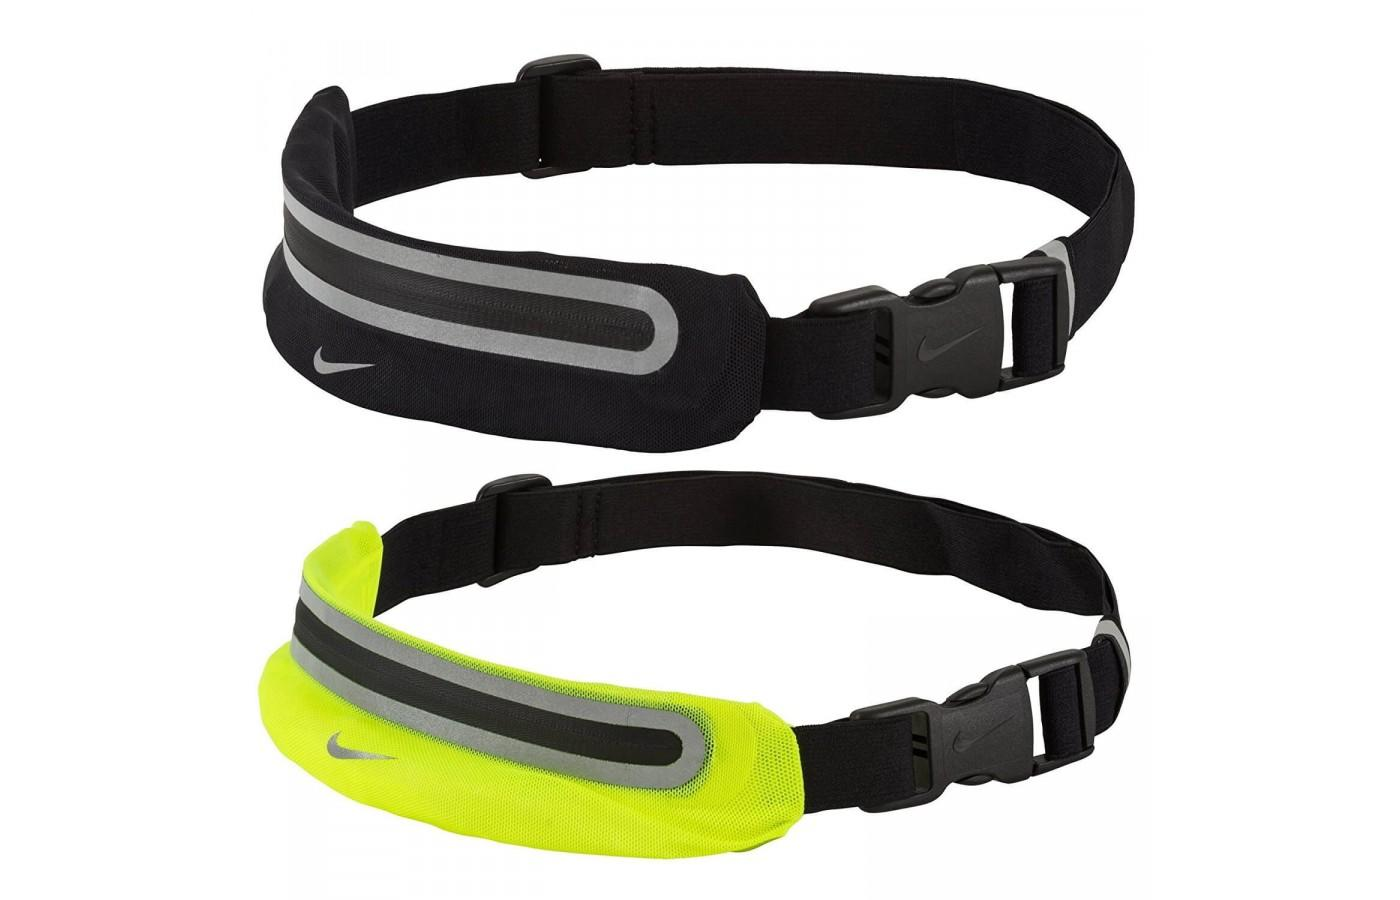 The Nike Lean Waist Pack is easy to put on and adjust